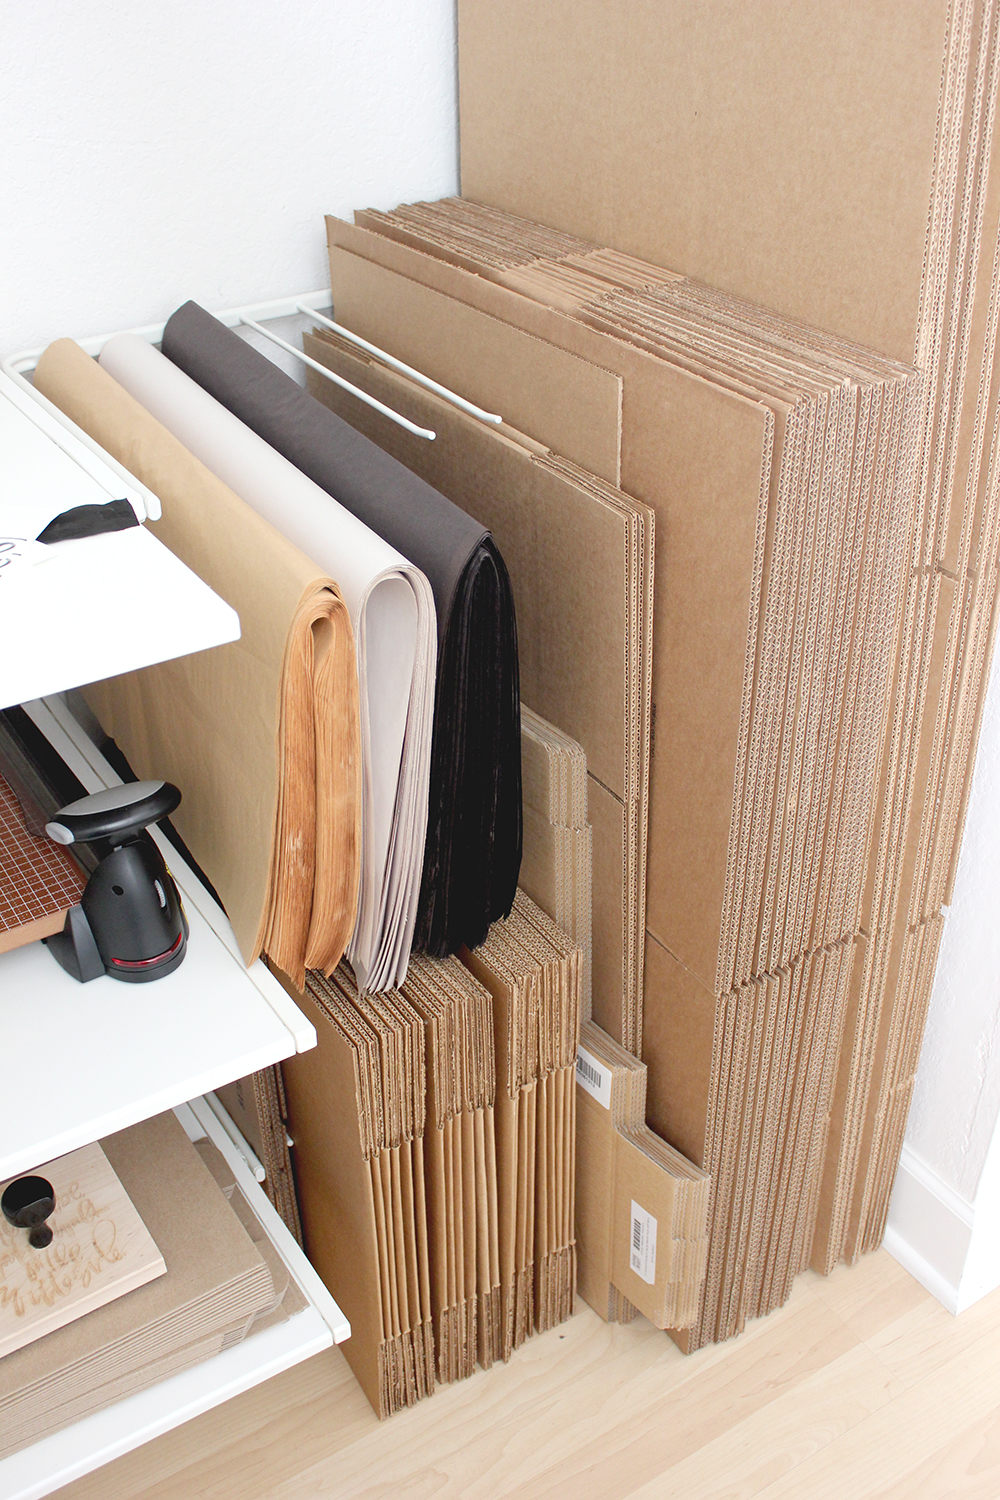 Example of Corrugated Material